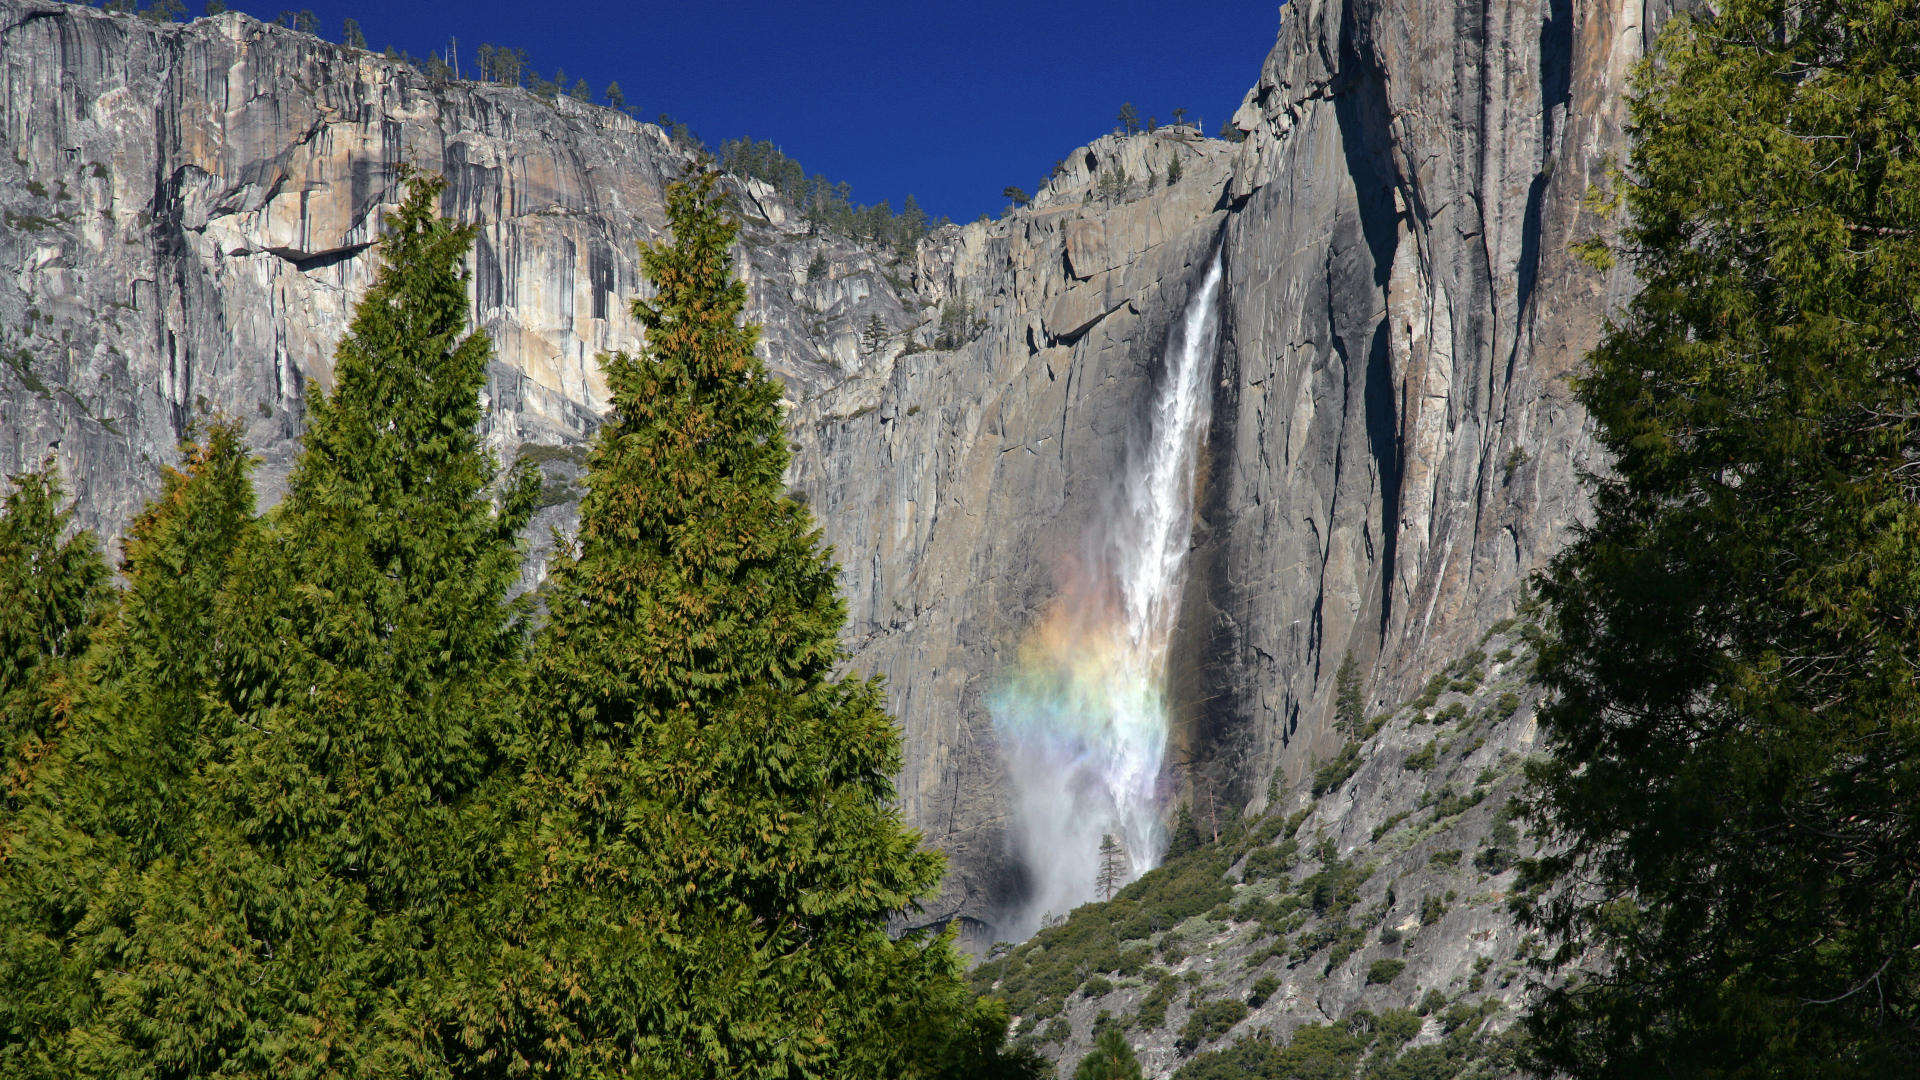 Yosemite HD Wallpapers 21606 Wallpaper Wallpaper hd 1920x1080